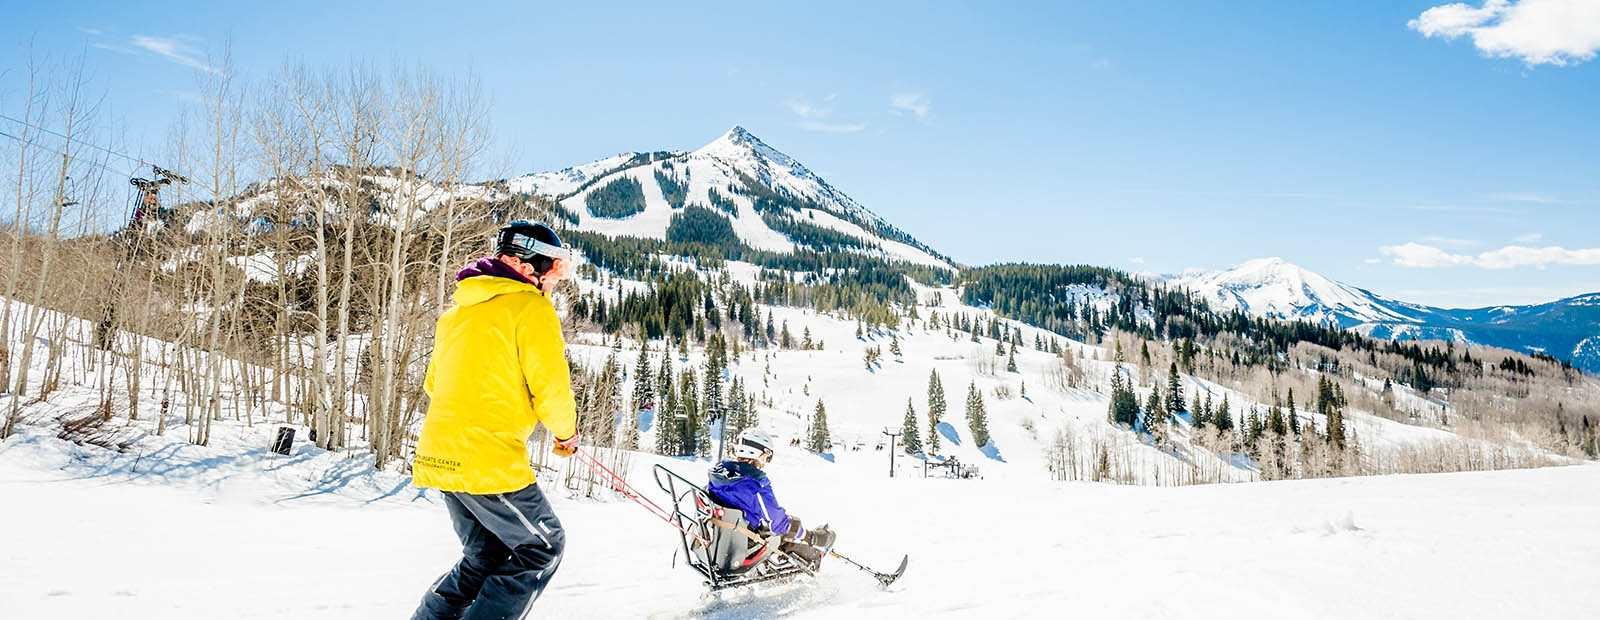 Adaptive skier at Crested Butte Mountain Resort